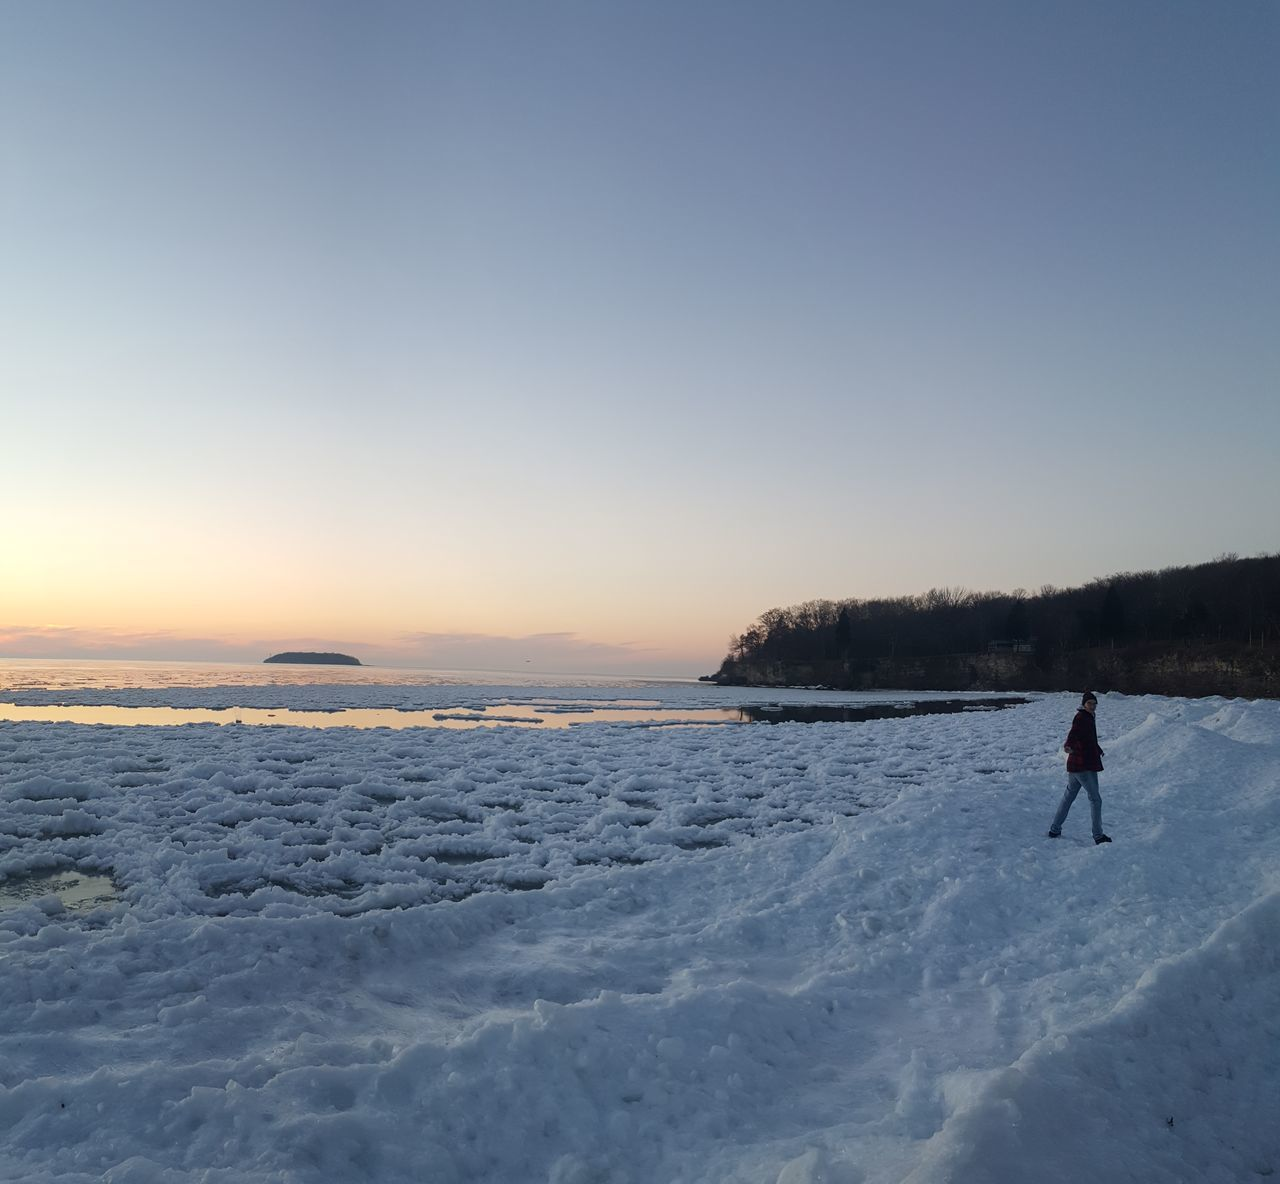 Cold Temperature Winter One Person Snow Frozen Full Length Ice Outdoors One Man Only Sunset Lake People Silhouette Ice-skating Winter Sport Ice Skate Scenics Nature South Bass Island Wrangler Ice